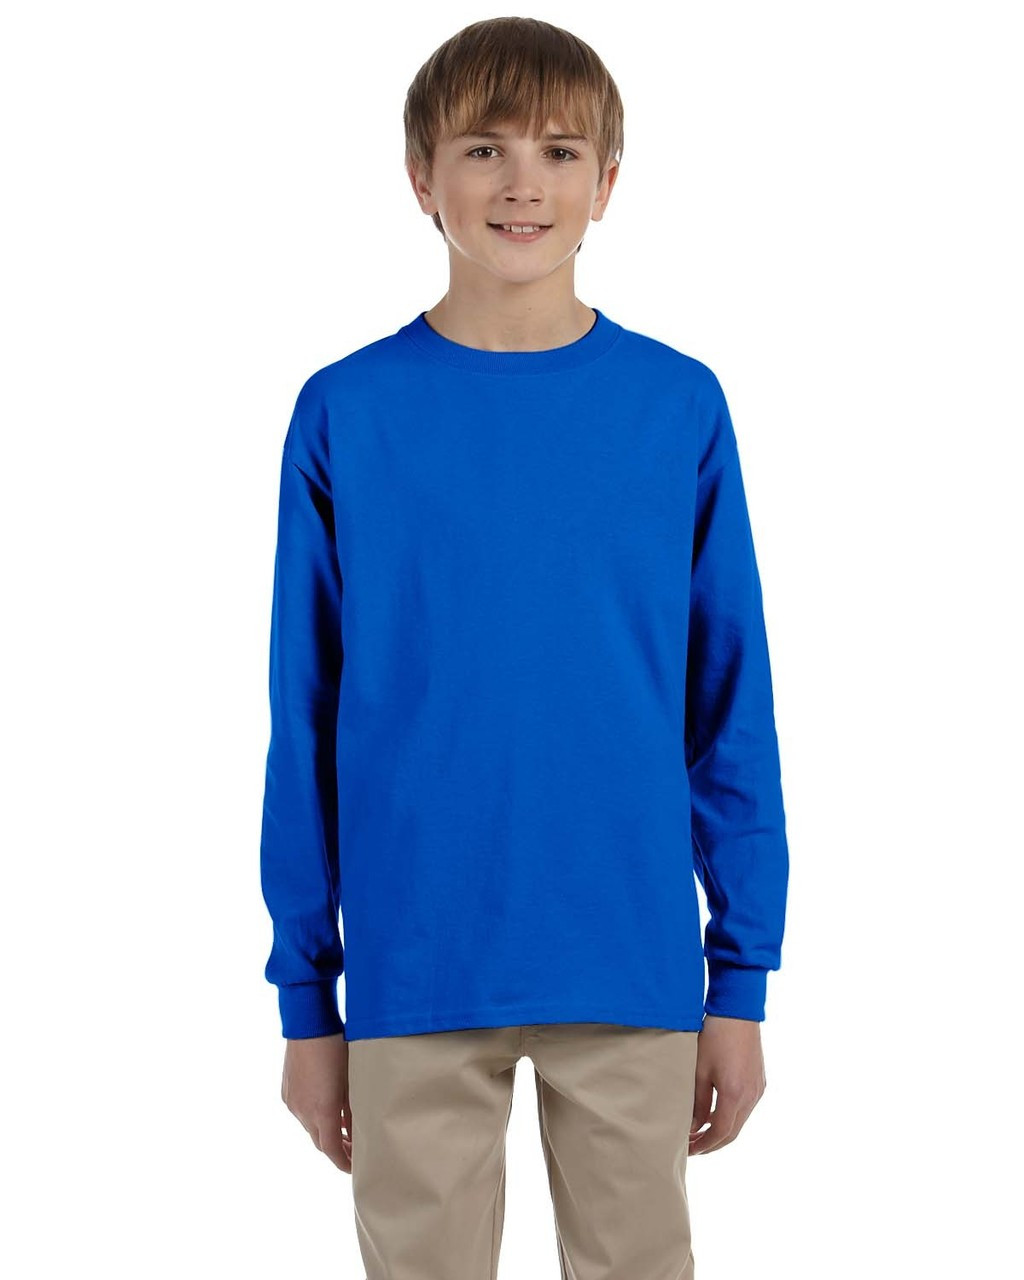 Royal - G240B Ultra Cotton Youth Long Sleeve T-Shirt | Blankclothing.ca